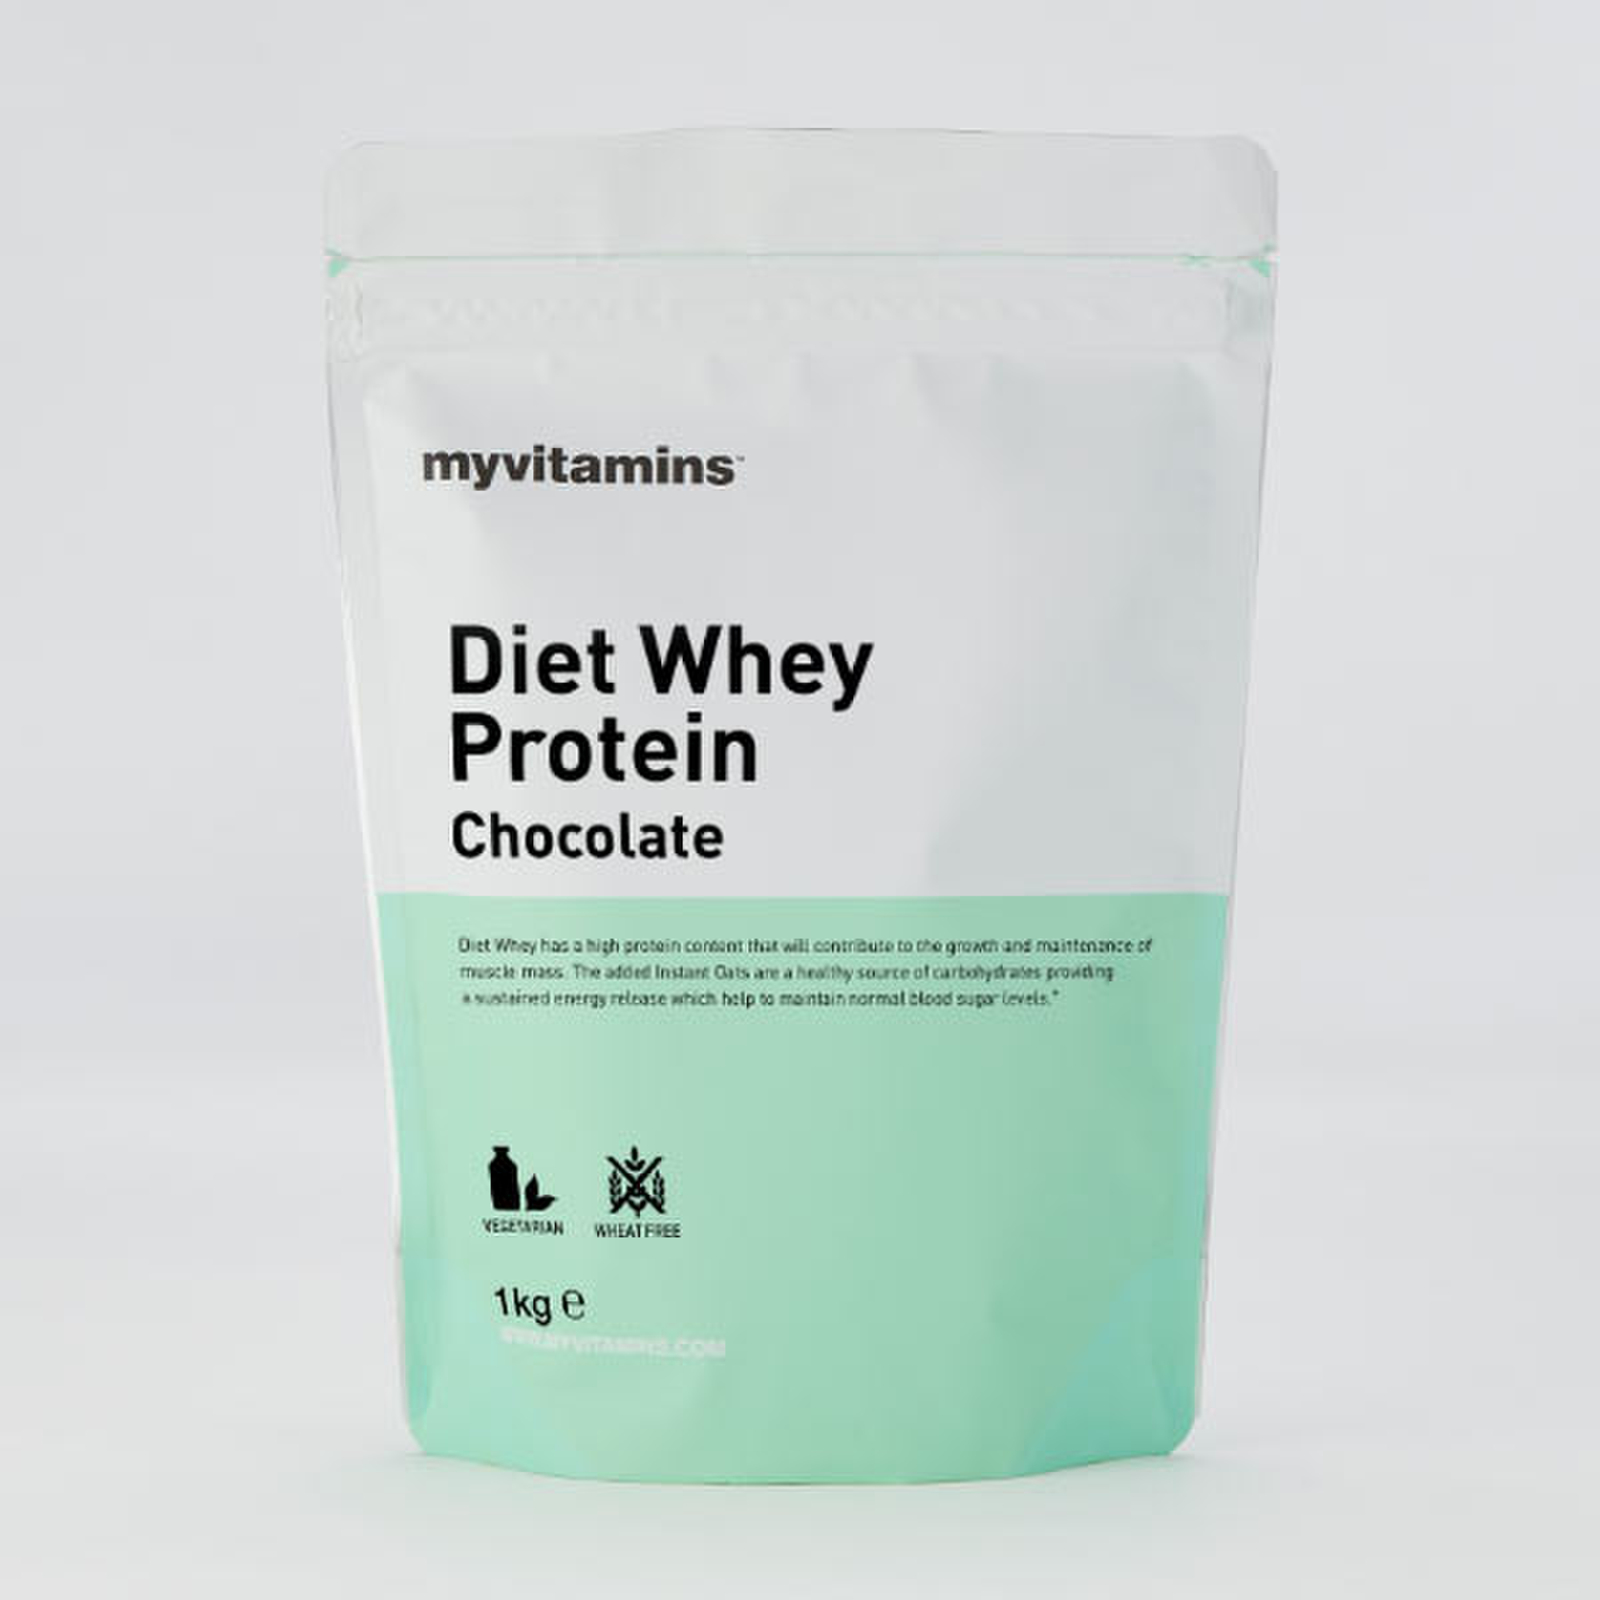 Diet Whey Protein - Chocolate 1kg